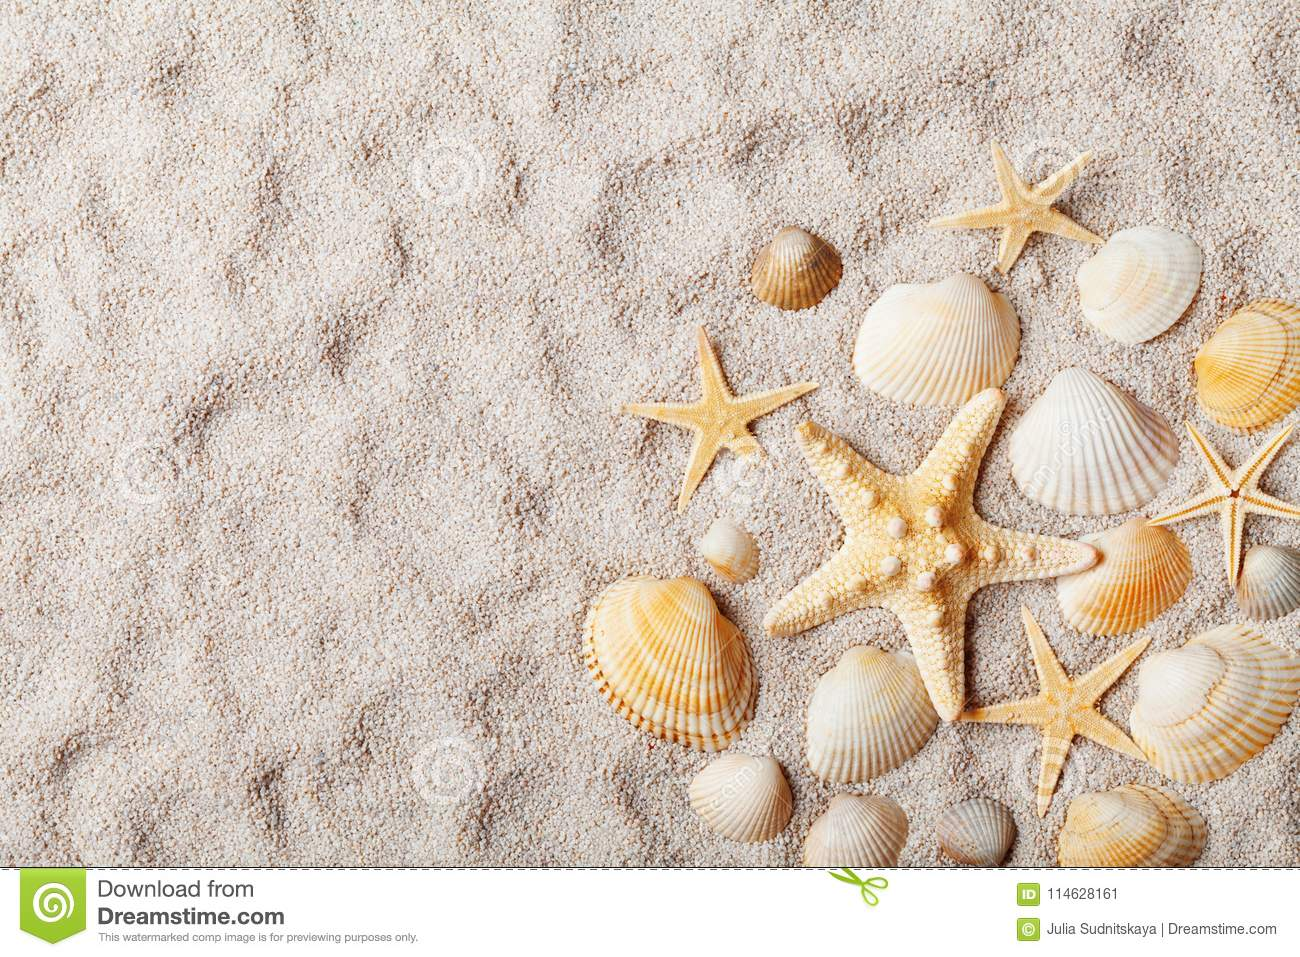 Travel background from sandy beach decorated with starfish and seashell. Top view.